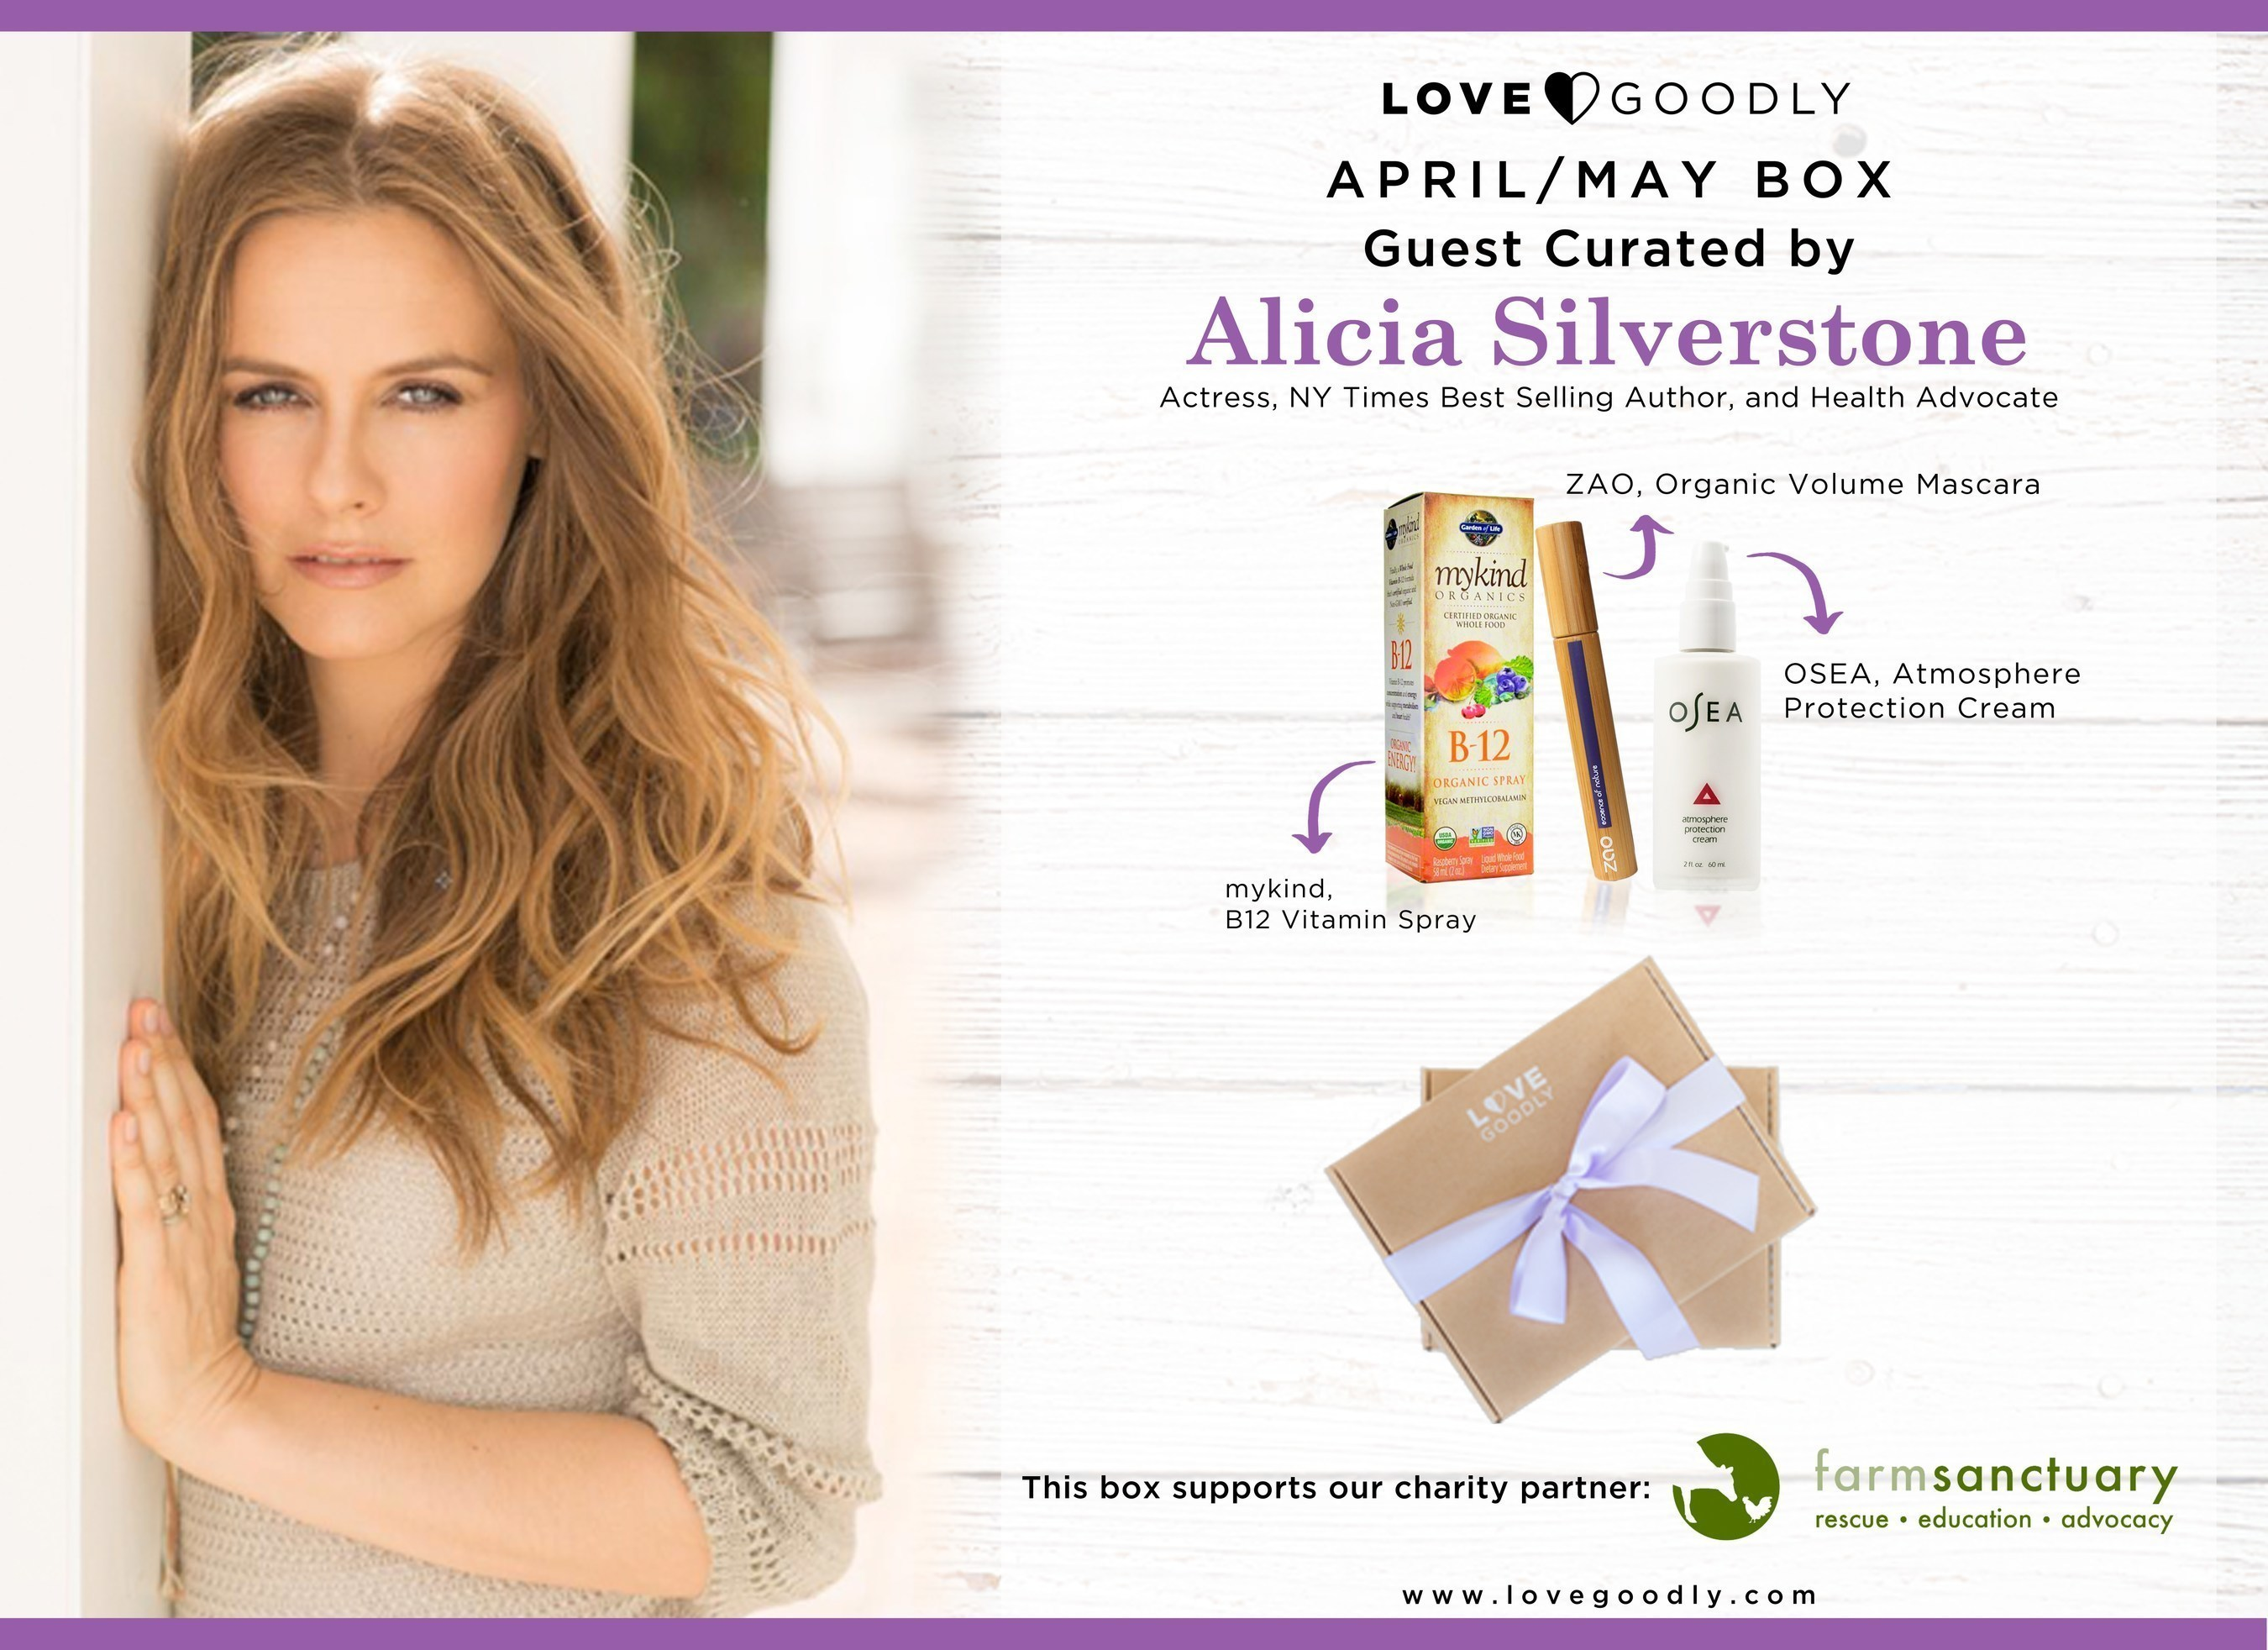 Alicia Silverstone Guest Curates the LOVE GOODLY April/May Box to Celebrate Earth Day and Support Farm Sanctuary!